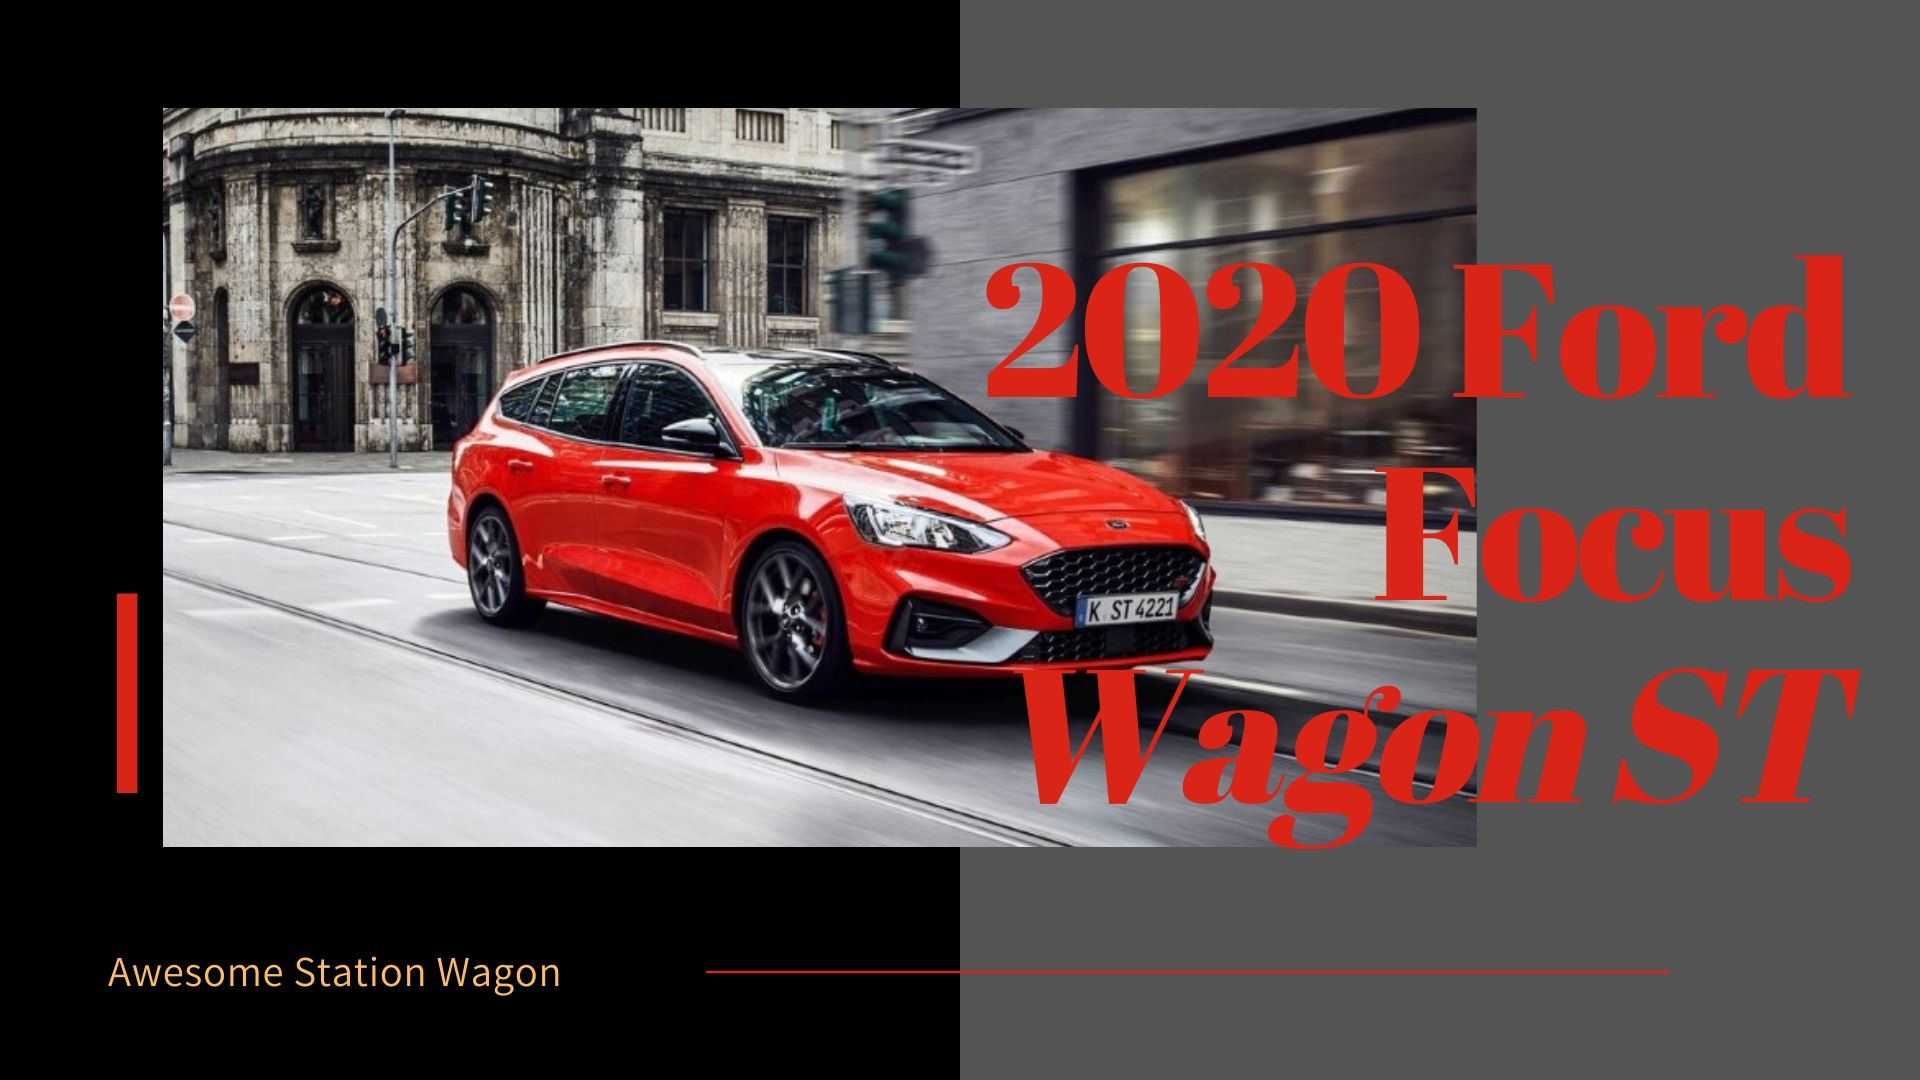 2020 Ford Focus Wagon Release Date & Price